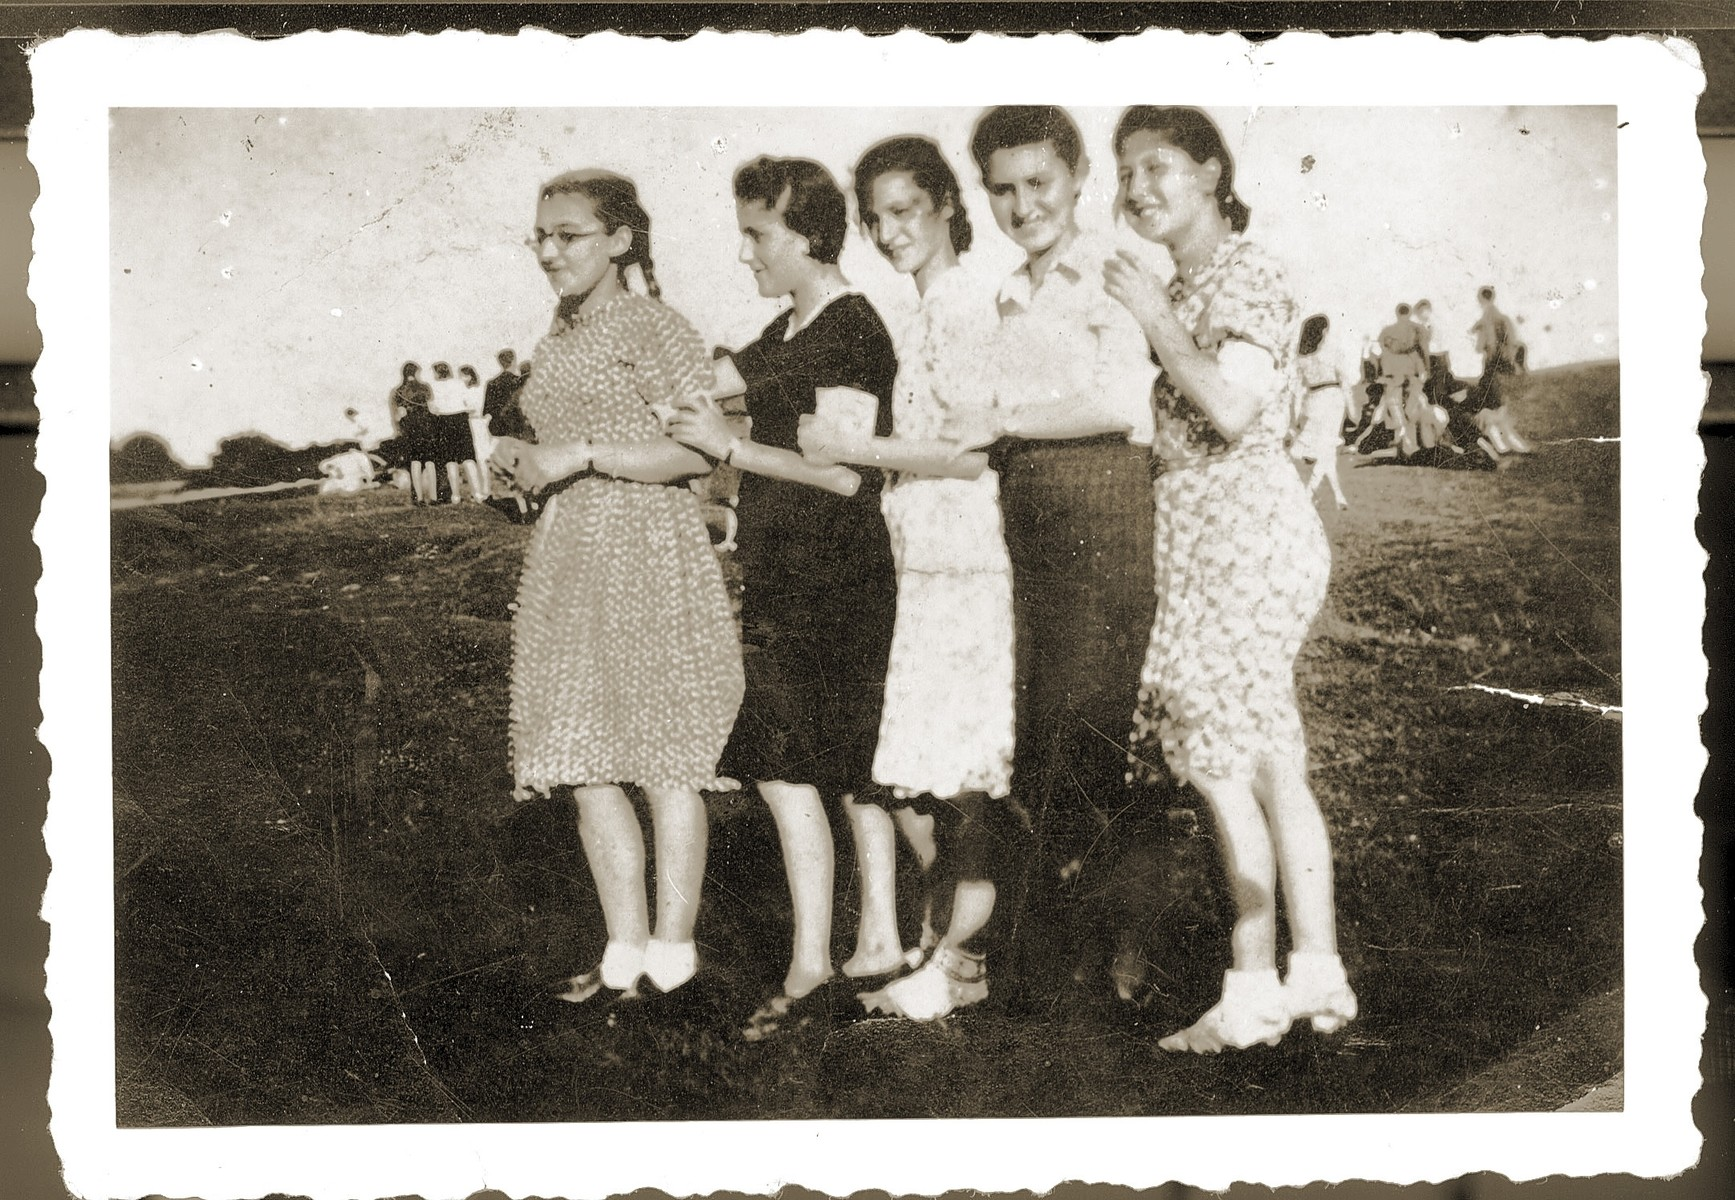 Five young women in the Bedzin ghetto pose in a line.    Pictured from left to right are Fela Zindorf, unidentified, Fredzia Gruengras, Regina Kuperberg, and Ala Lubliner.